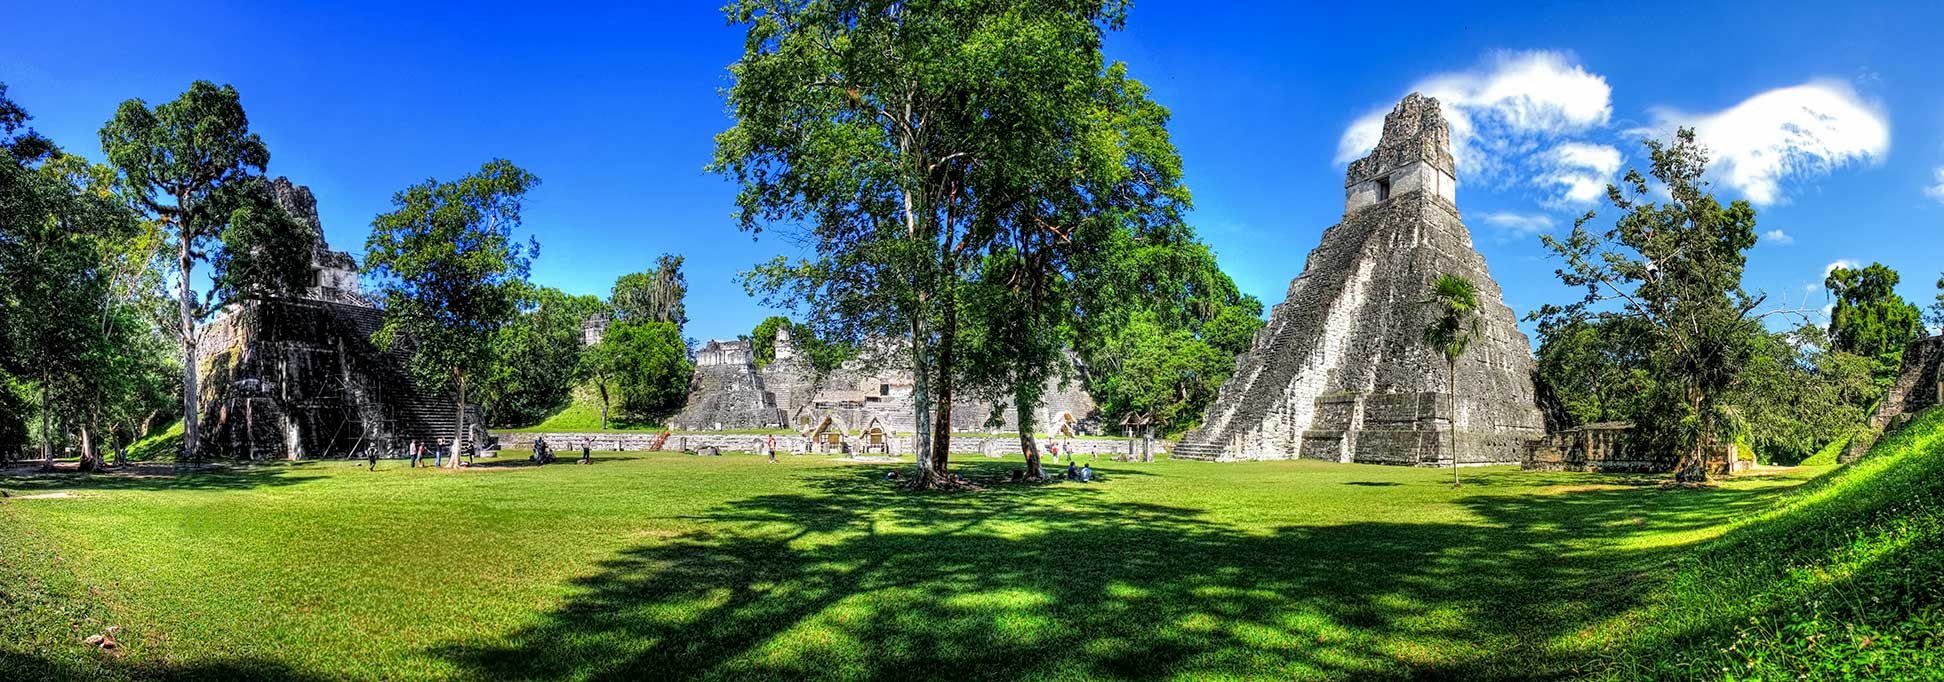 Great Plaza of the Tikal Temple in Guatemala.